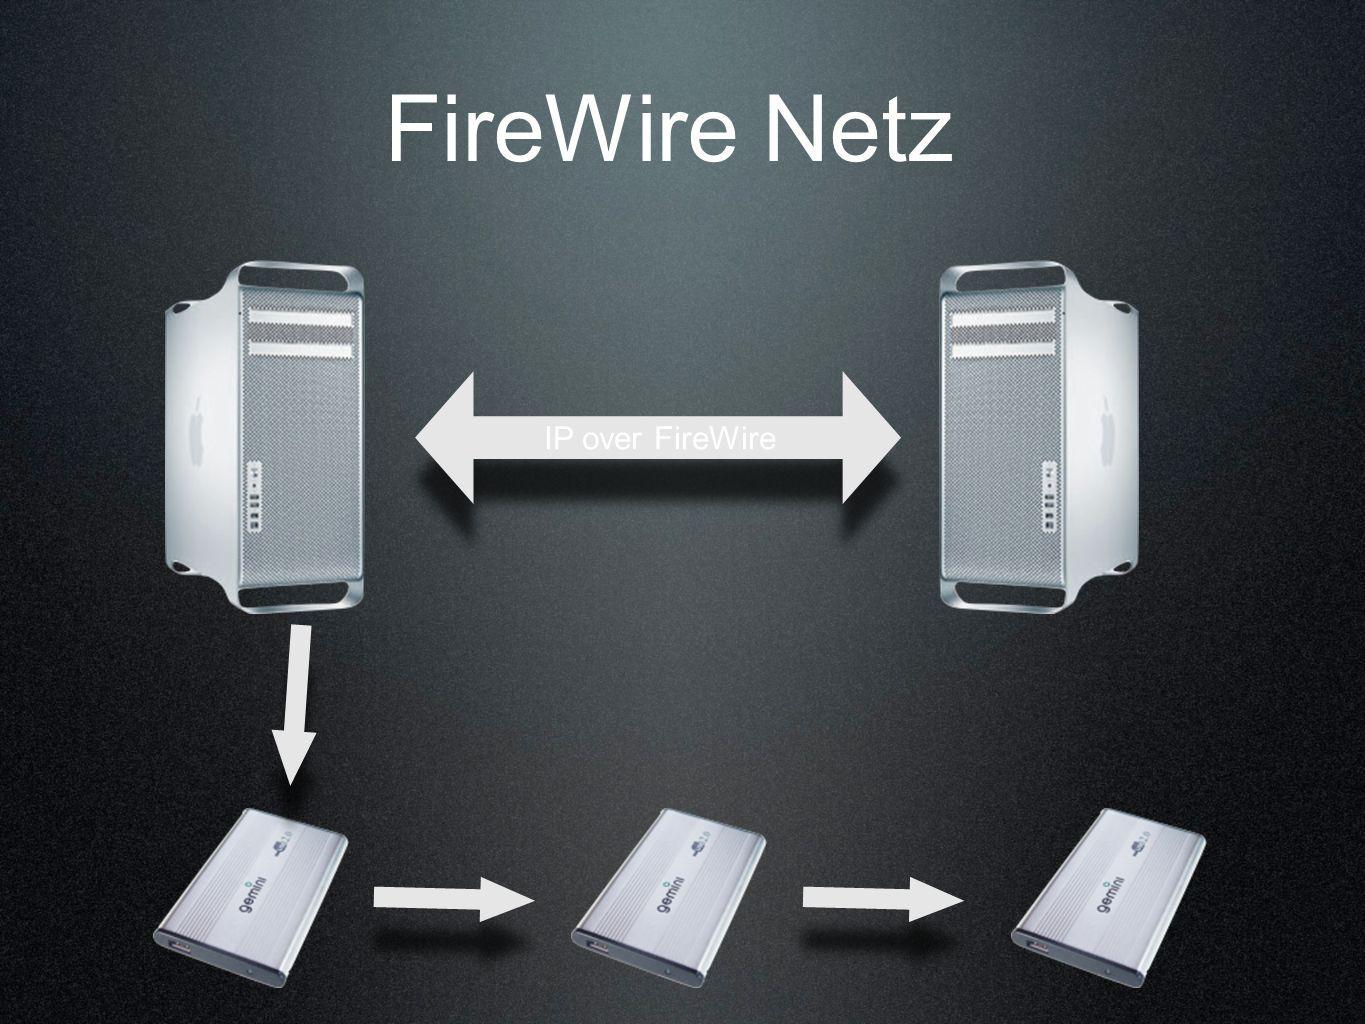 IP over FireWire